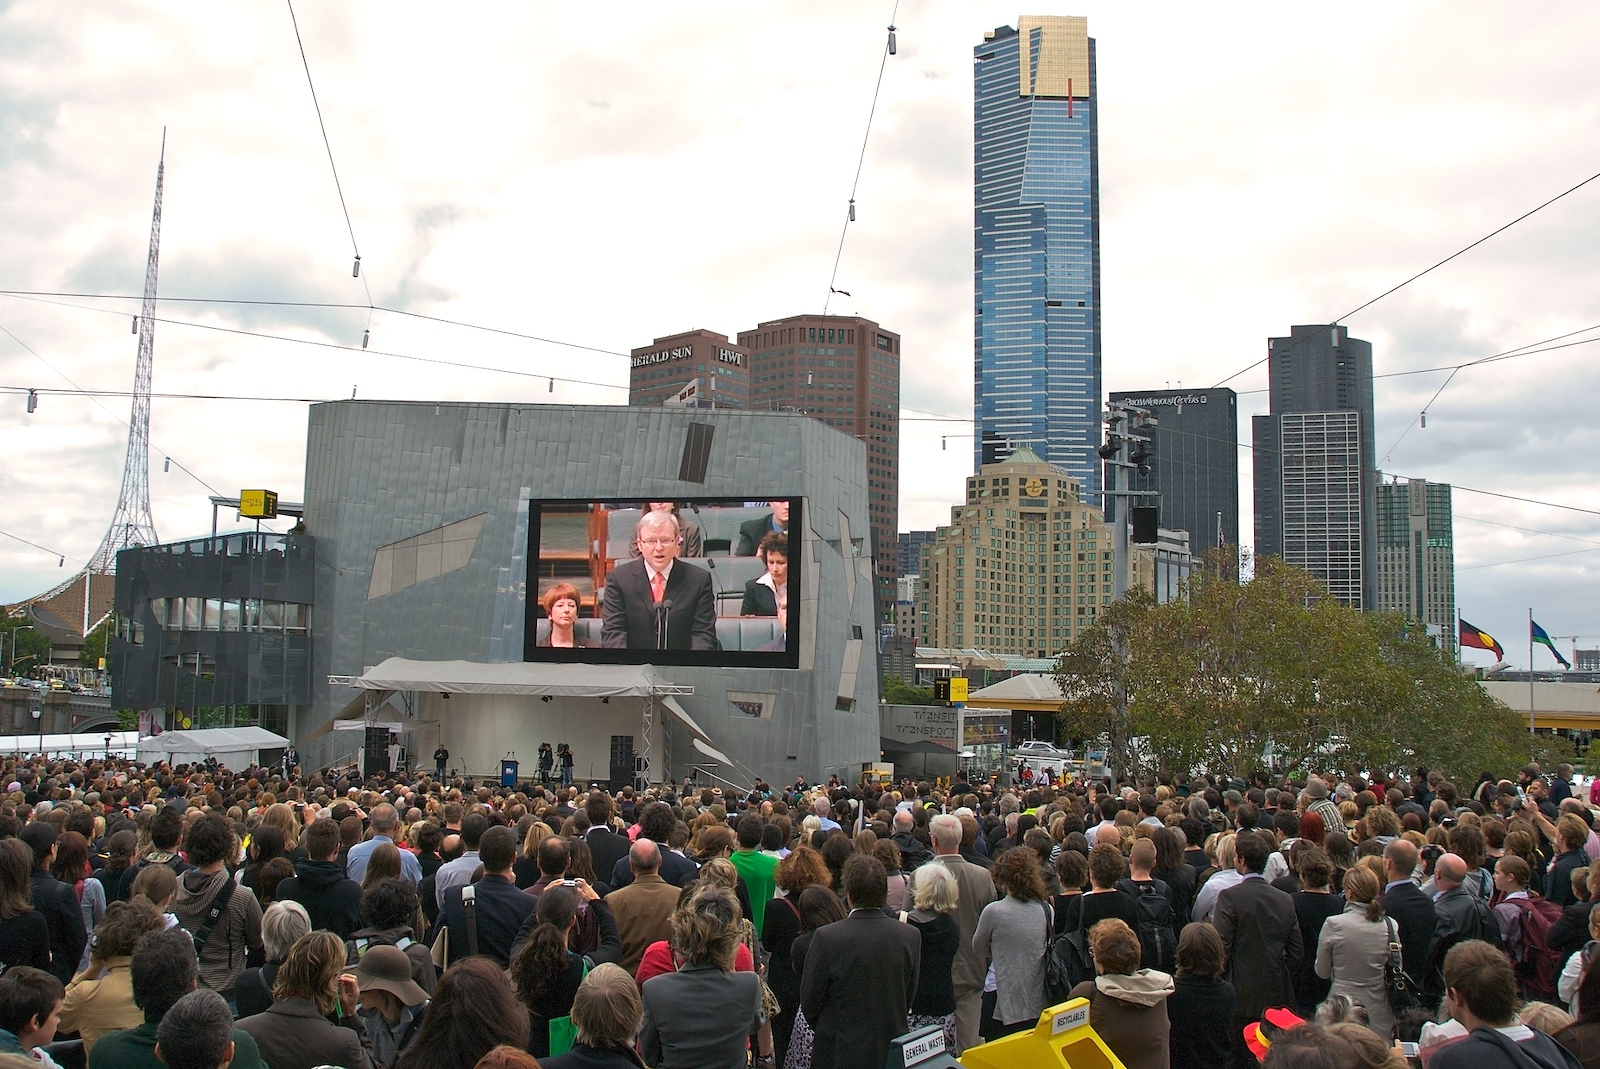 Prime Minister Kevin Rudd onscreen in Federation Square, Melbourne, apologising to the Stolen Generations